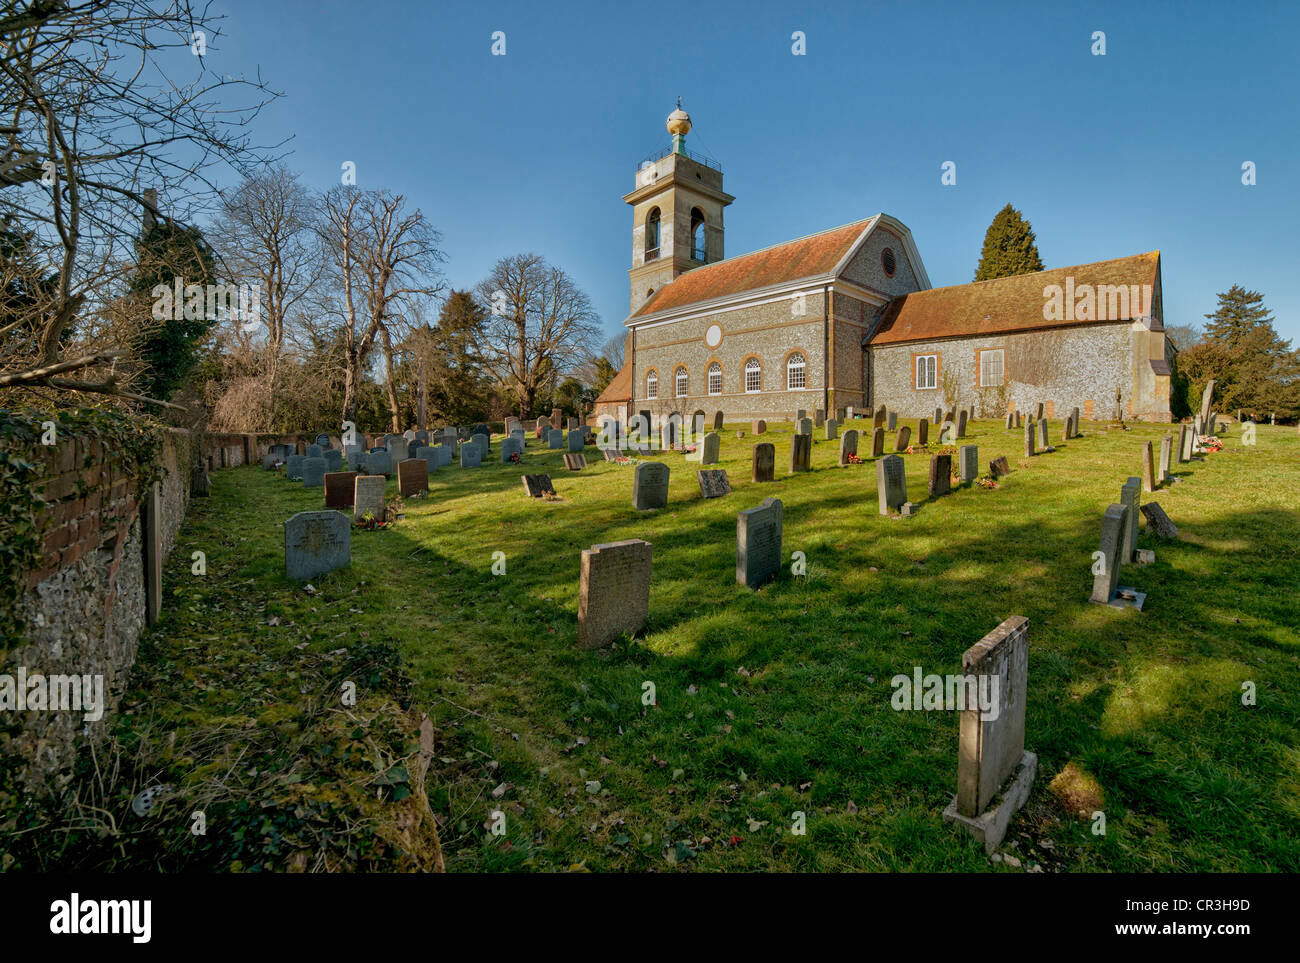 St Lawrence's Church, West Wycombe, Buckinghamshire - Stock Image